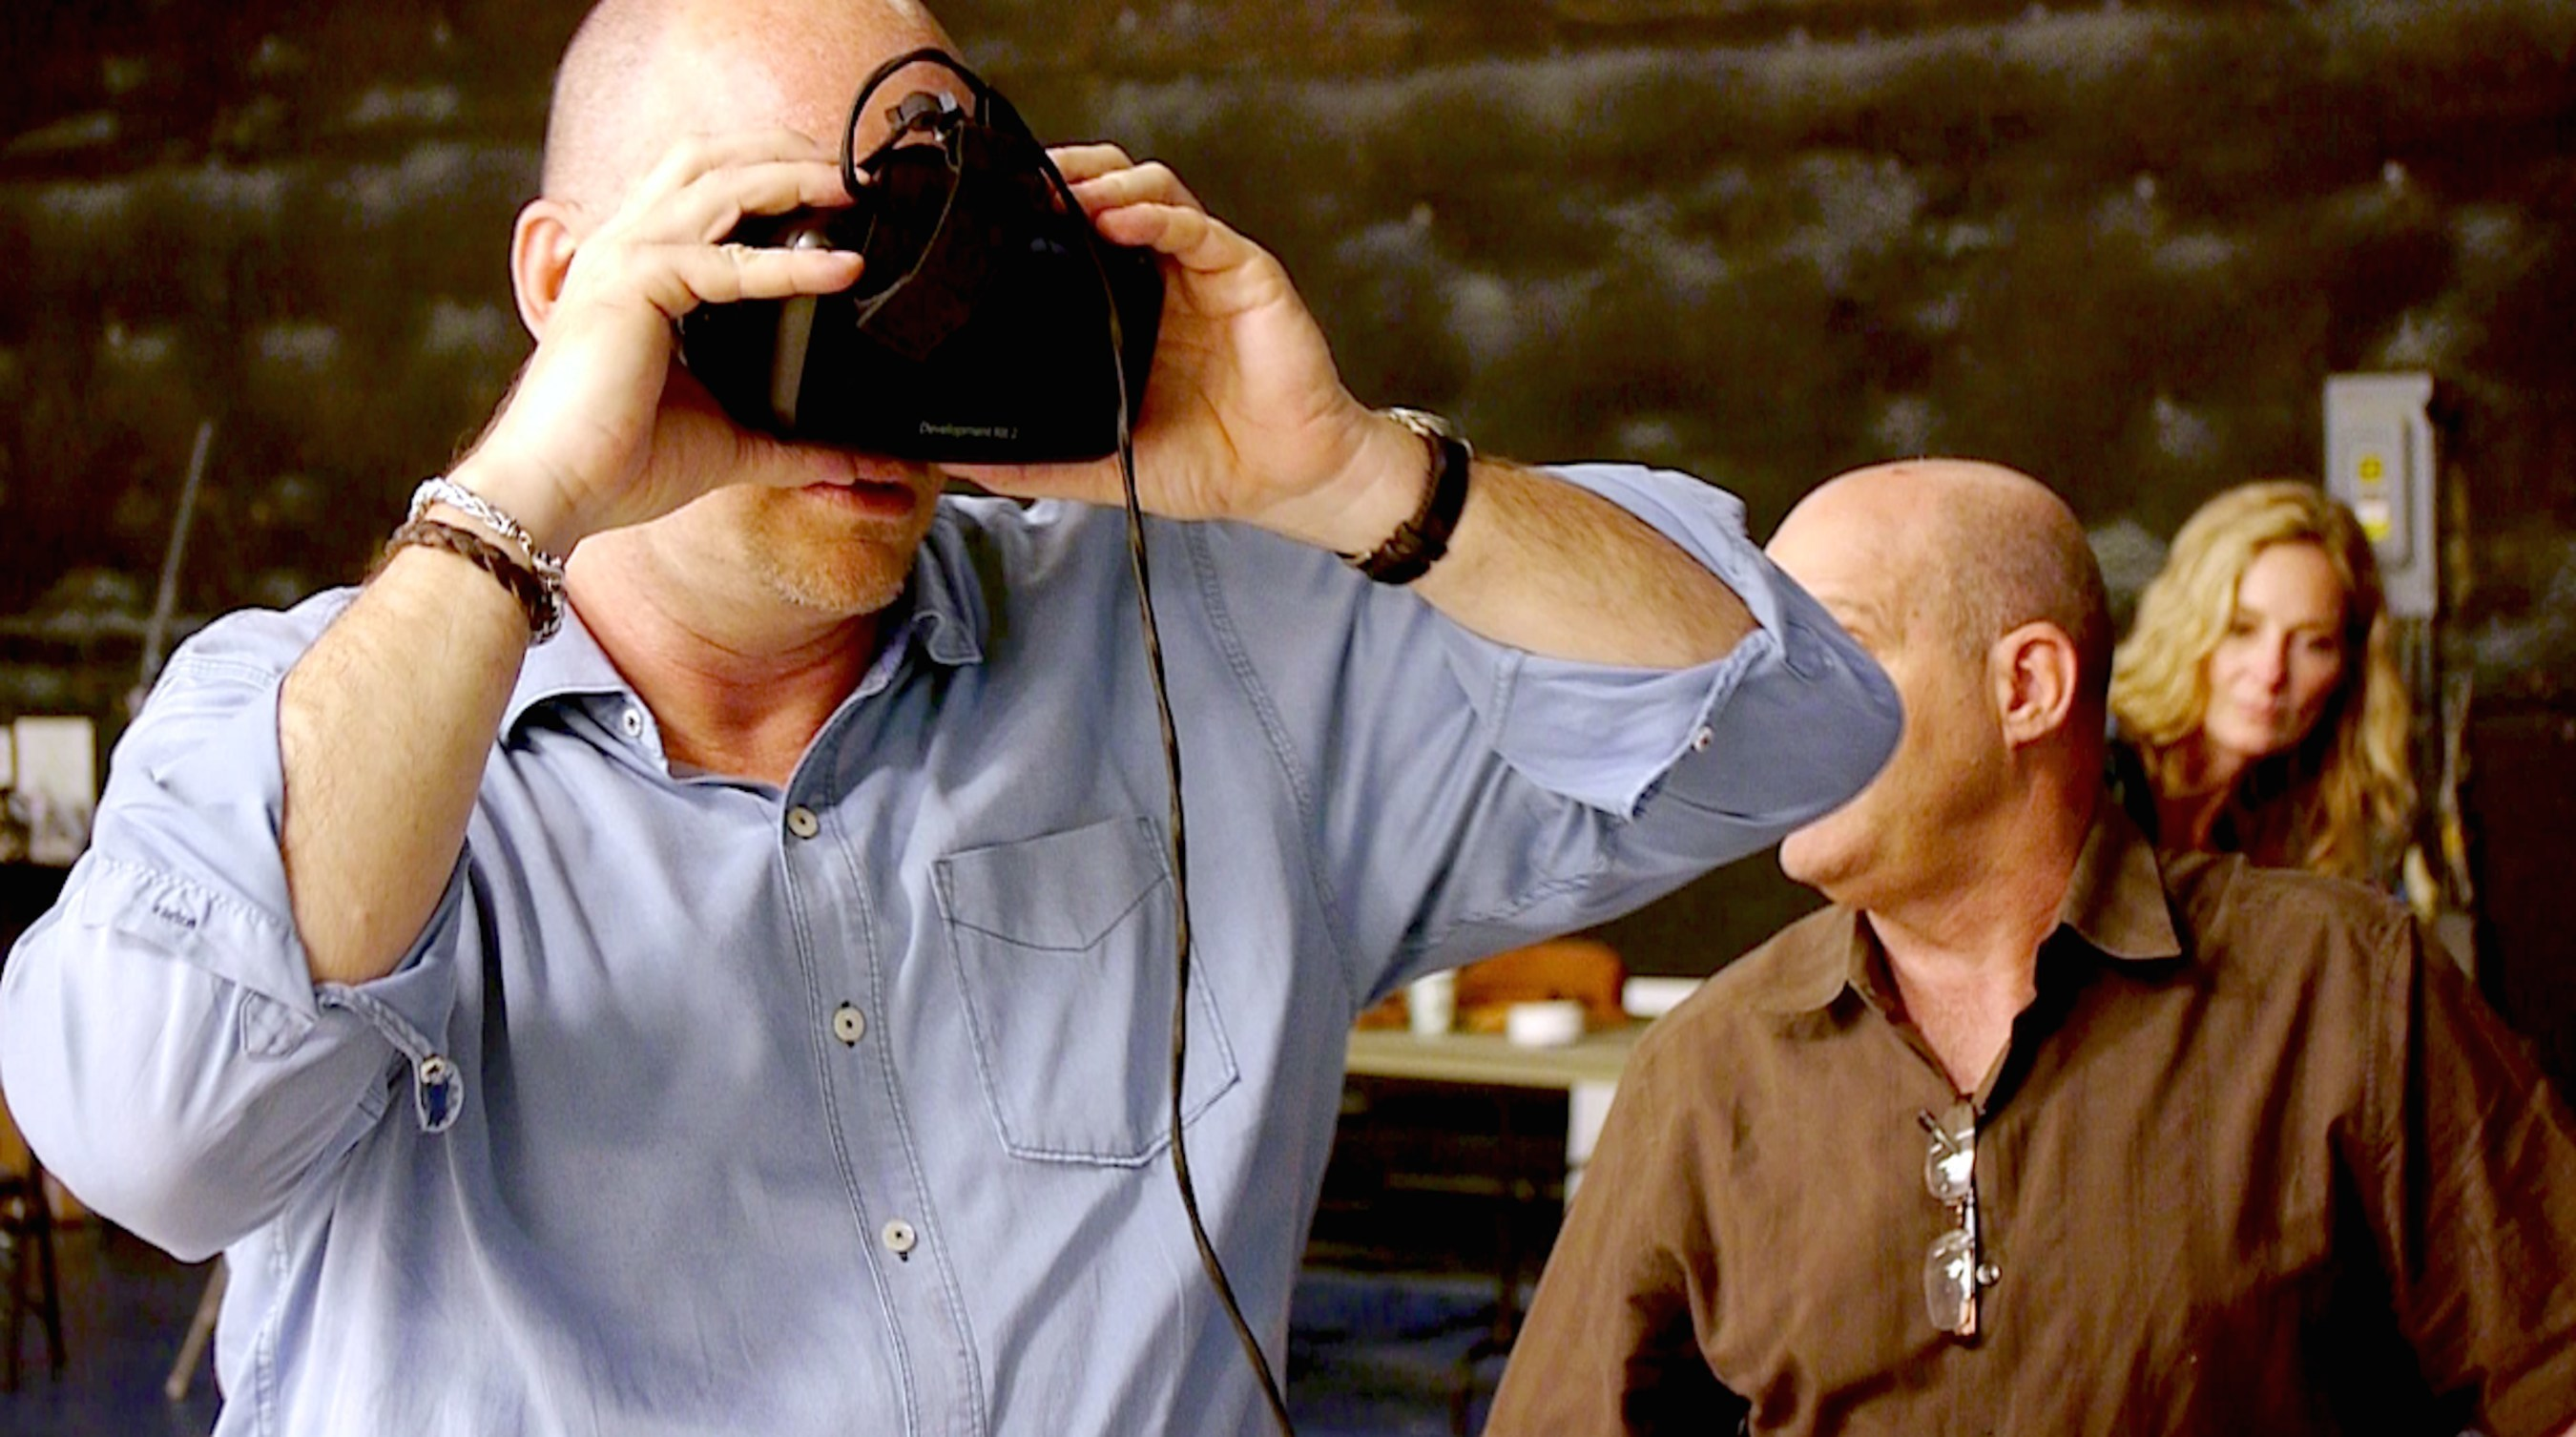 Writer/Director David Marlett on the set of MansLaughter, using an Oculus Rift DK2 to review VR rushes in real-time.